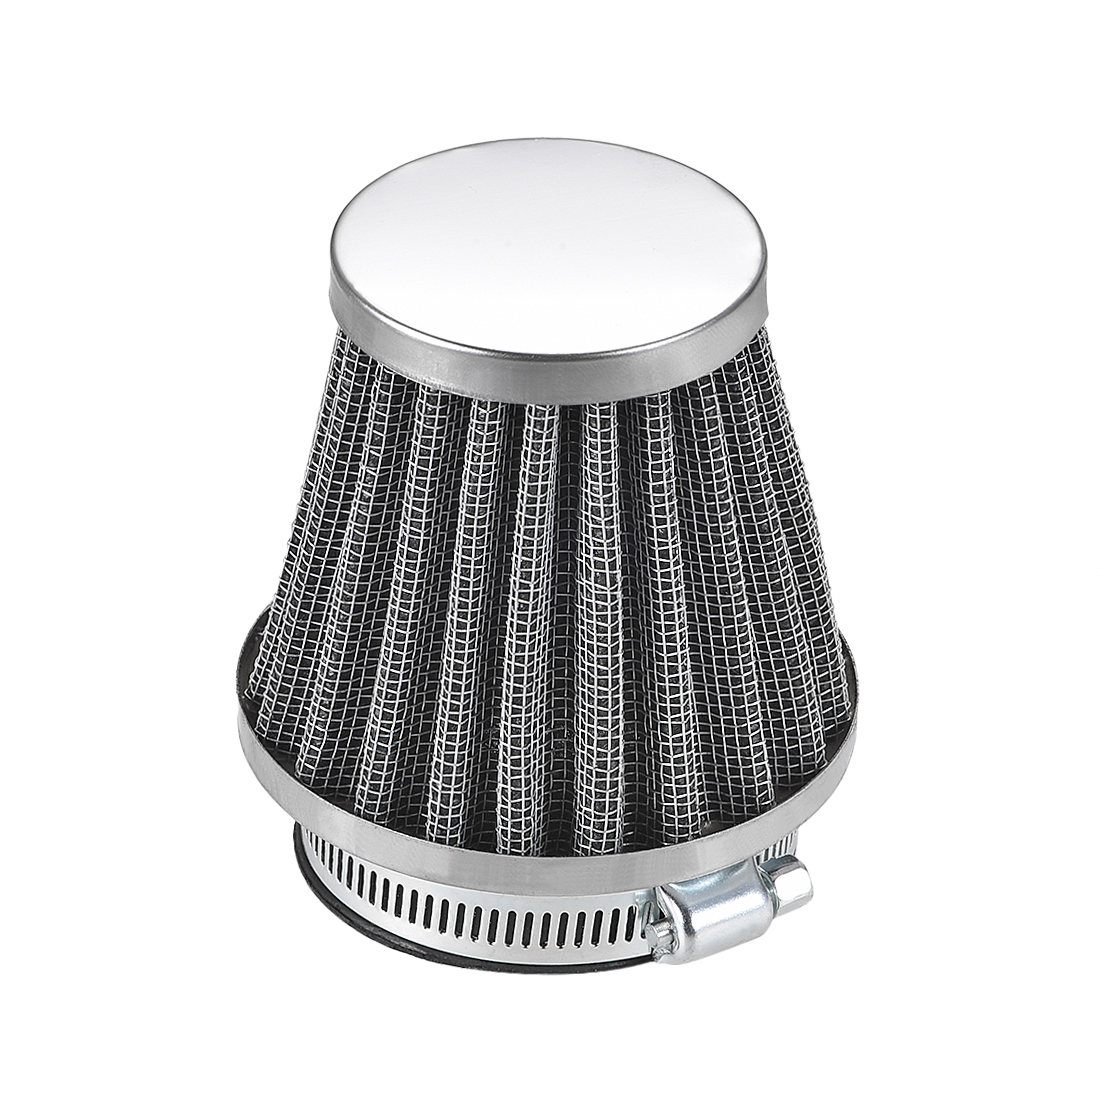 52mm Air Filter for 50cc 110cc 125cc 150cc 200cc gy6 Moped Scooter Atv Dirt Bike